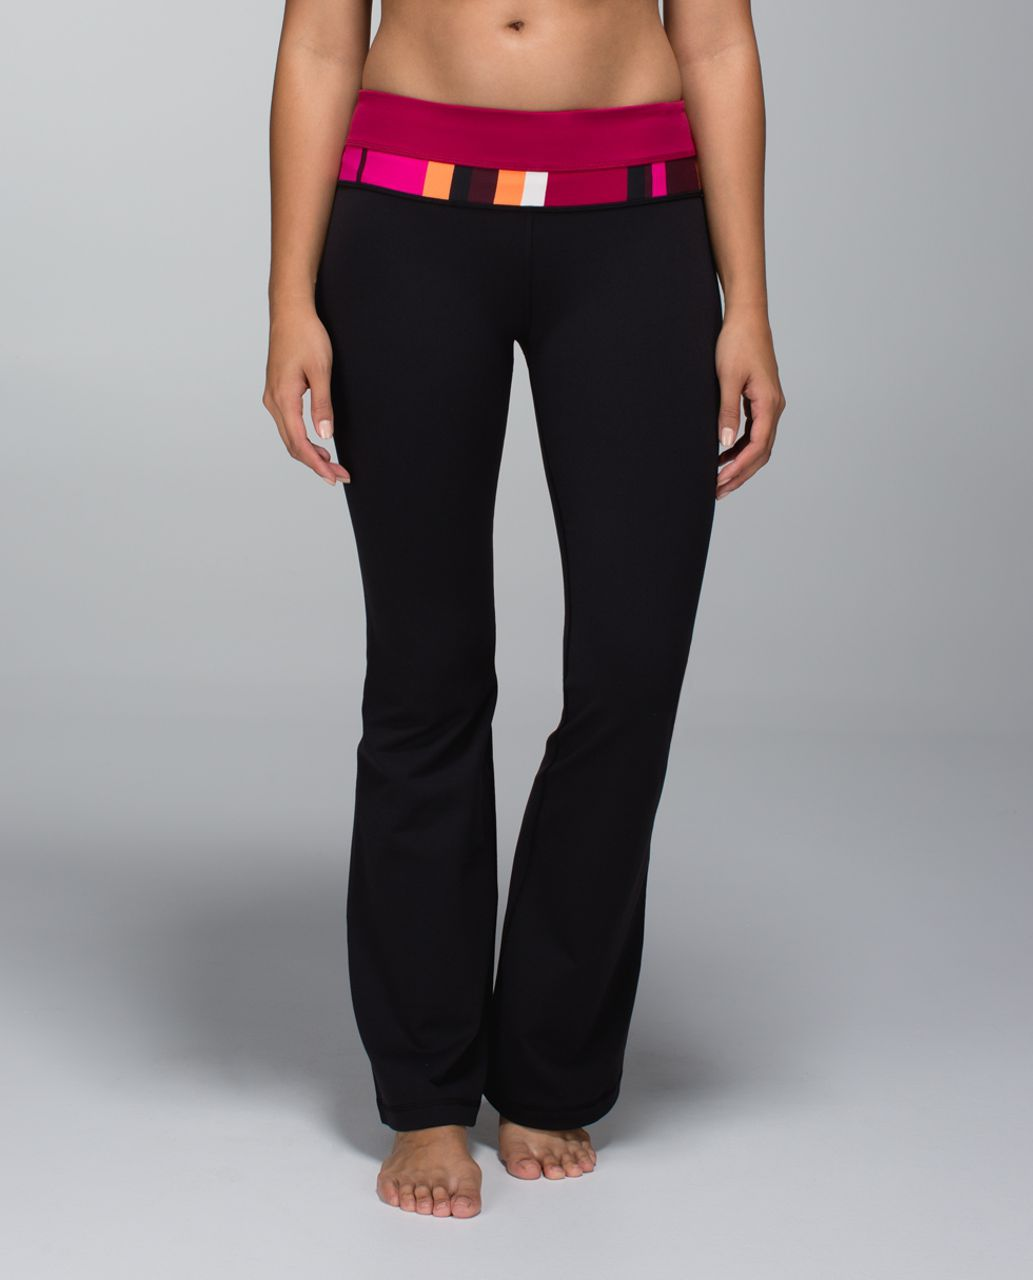 Lululemon Groove Pant *Full-On Luon (Regular) - Black / Bumble Berry / Blossom Stripe Bumble Berry Ghost